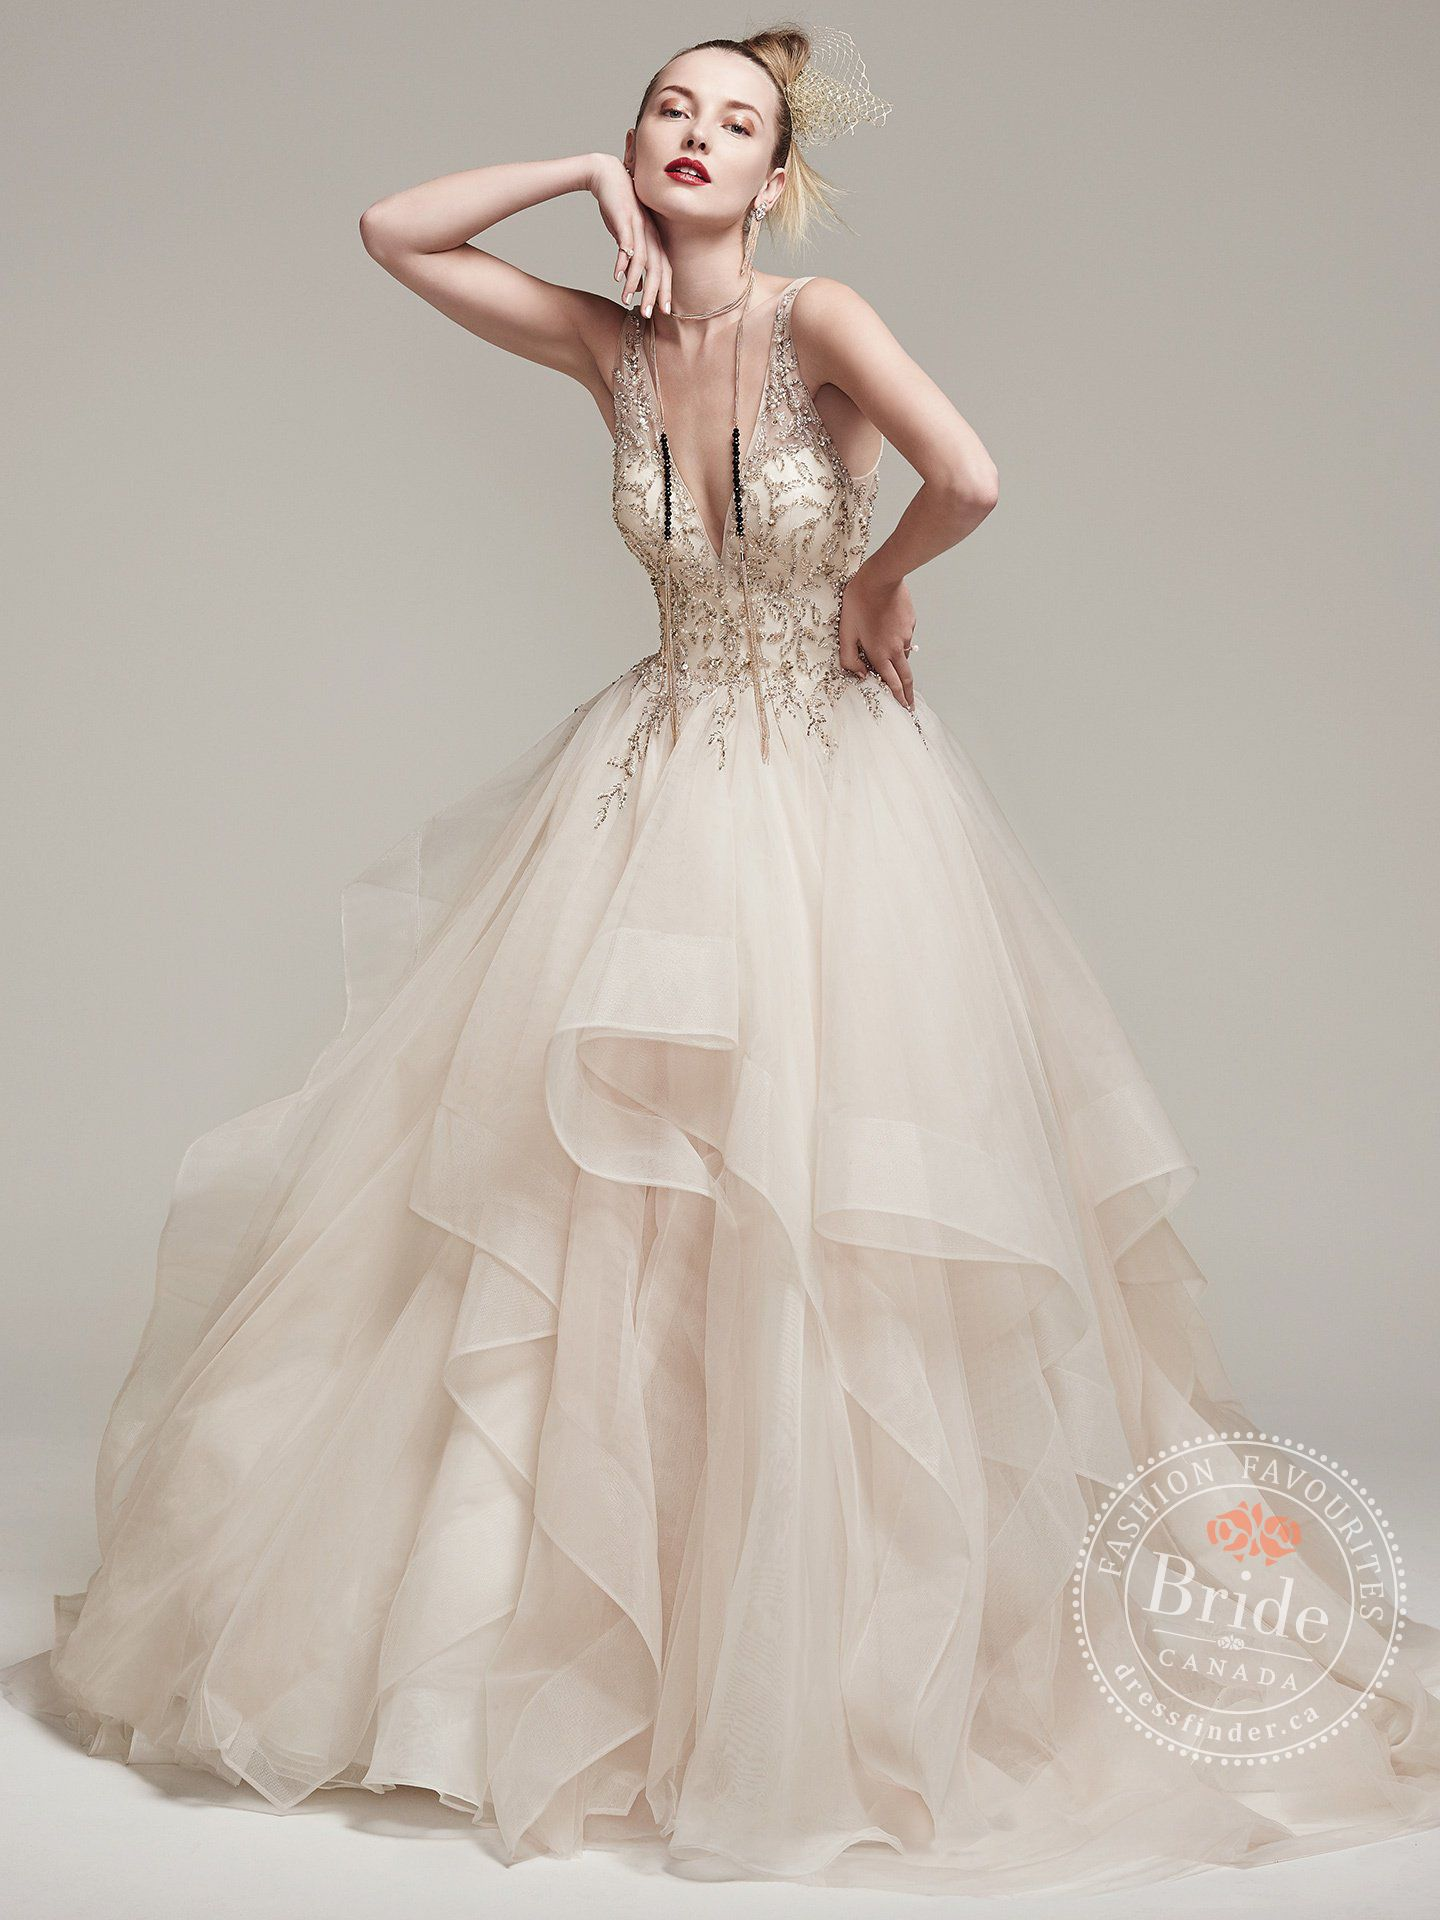 6 amelie by sottero midgley maggie sottero designs find this pin and more on wedding dresses by wpgweddinglady ombrellifo Image collections